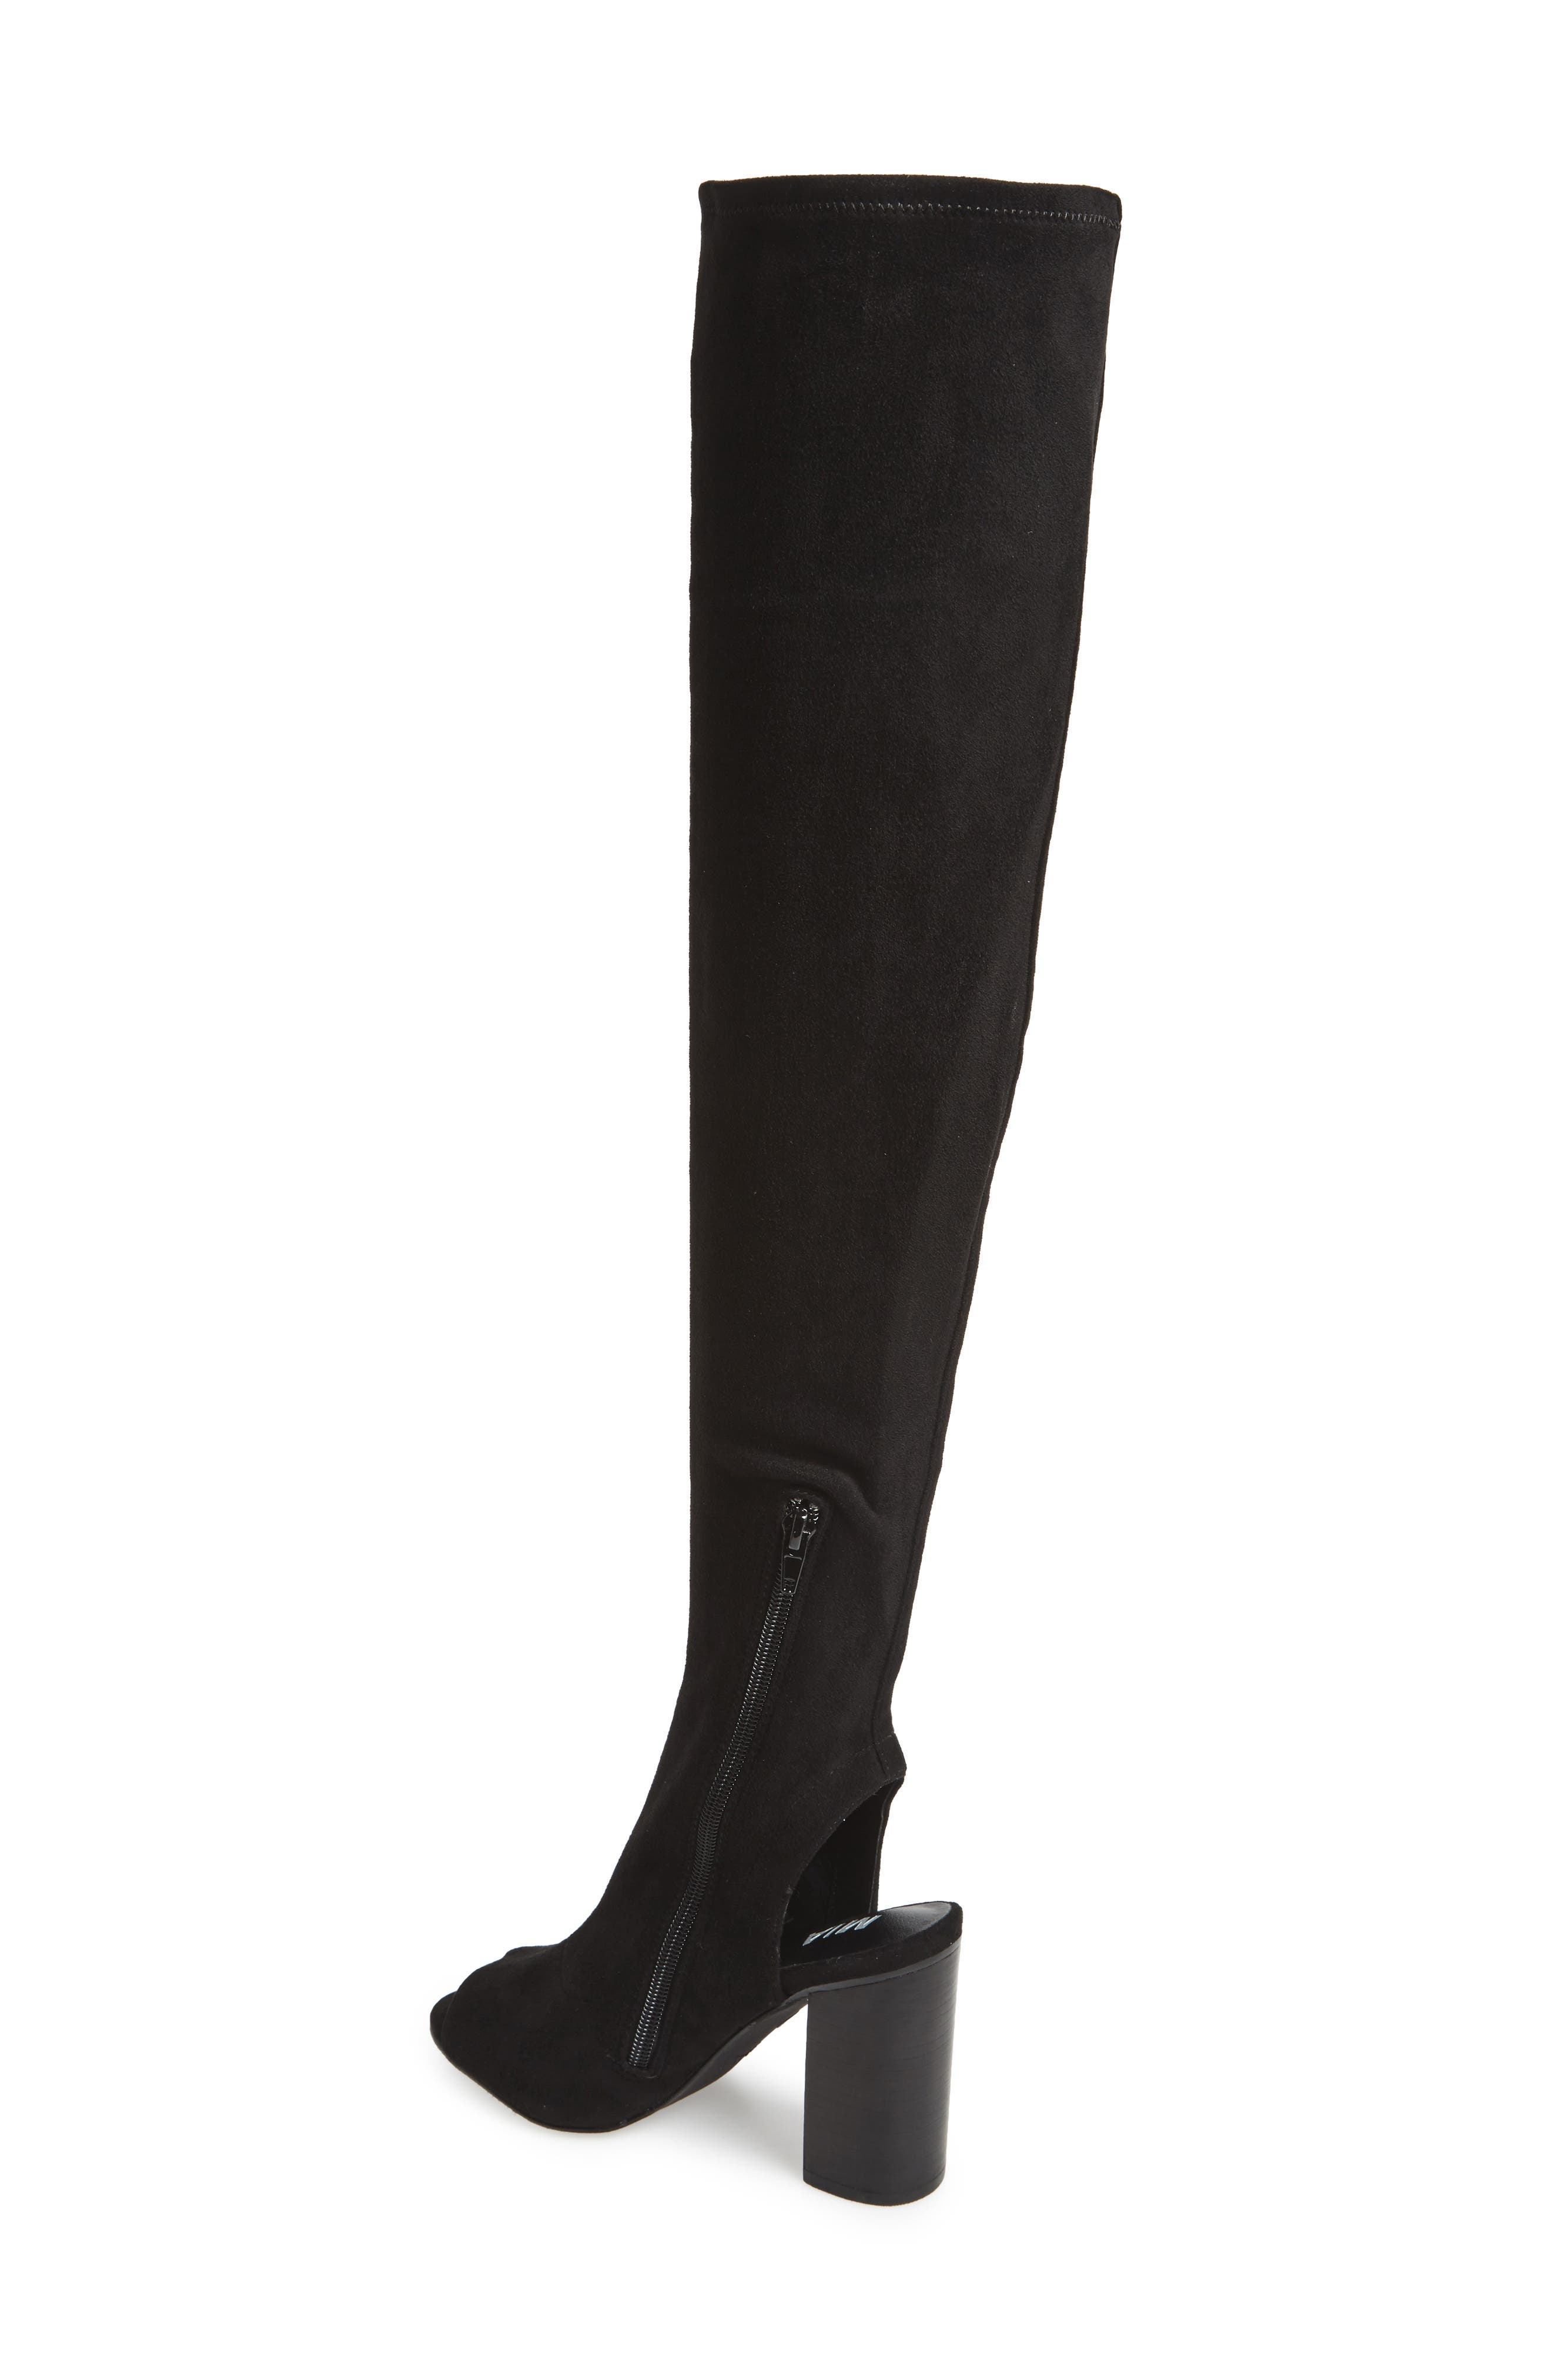 Robyn Cutout Over the Knee Boot,                             Alternate thumbnail 2, color,                             001